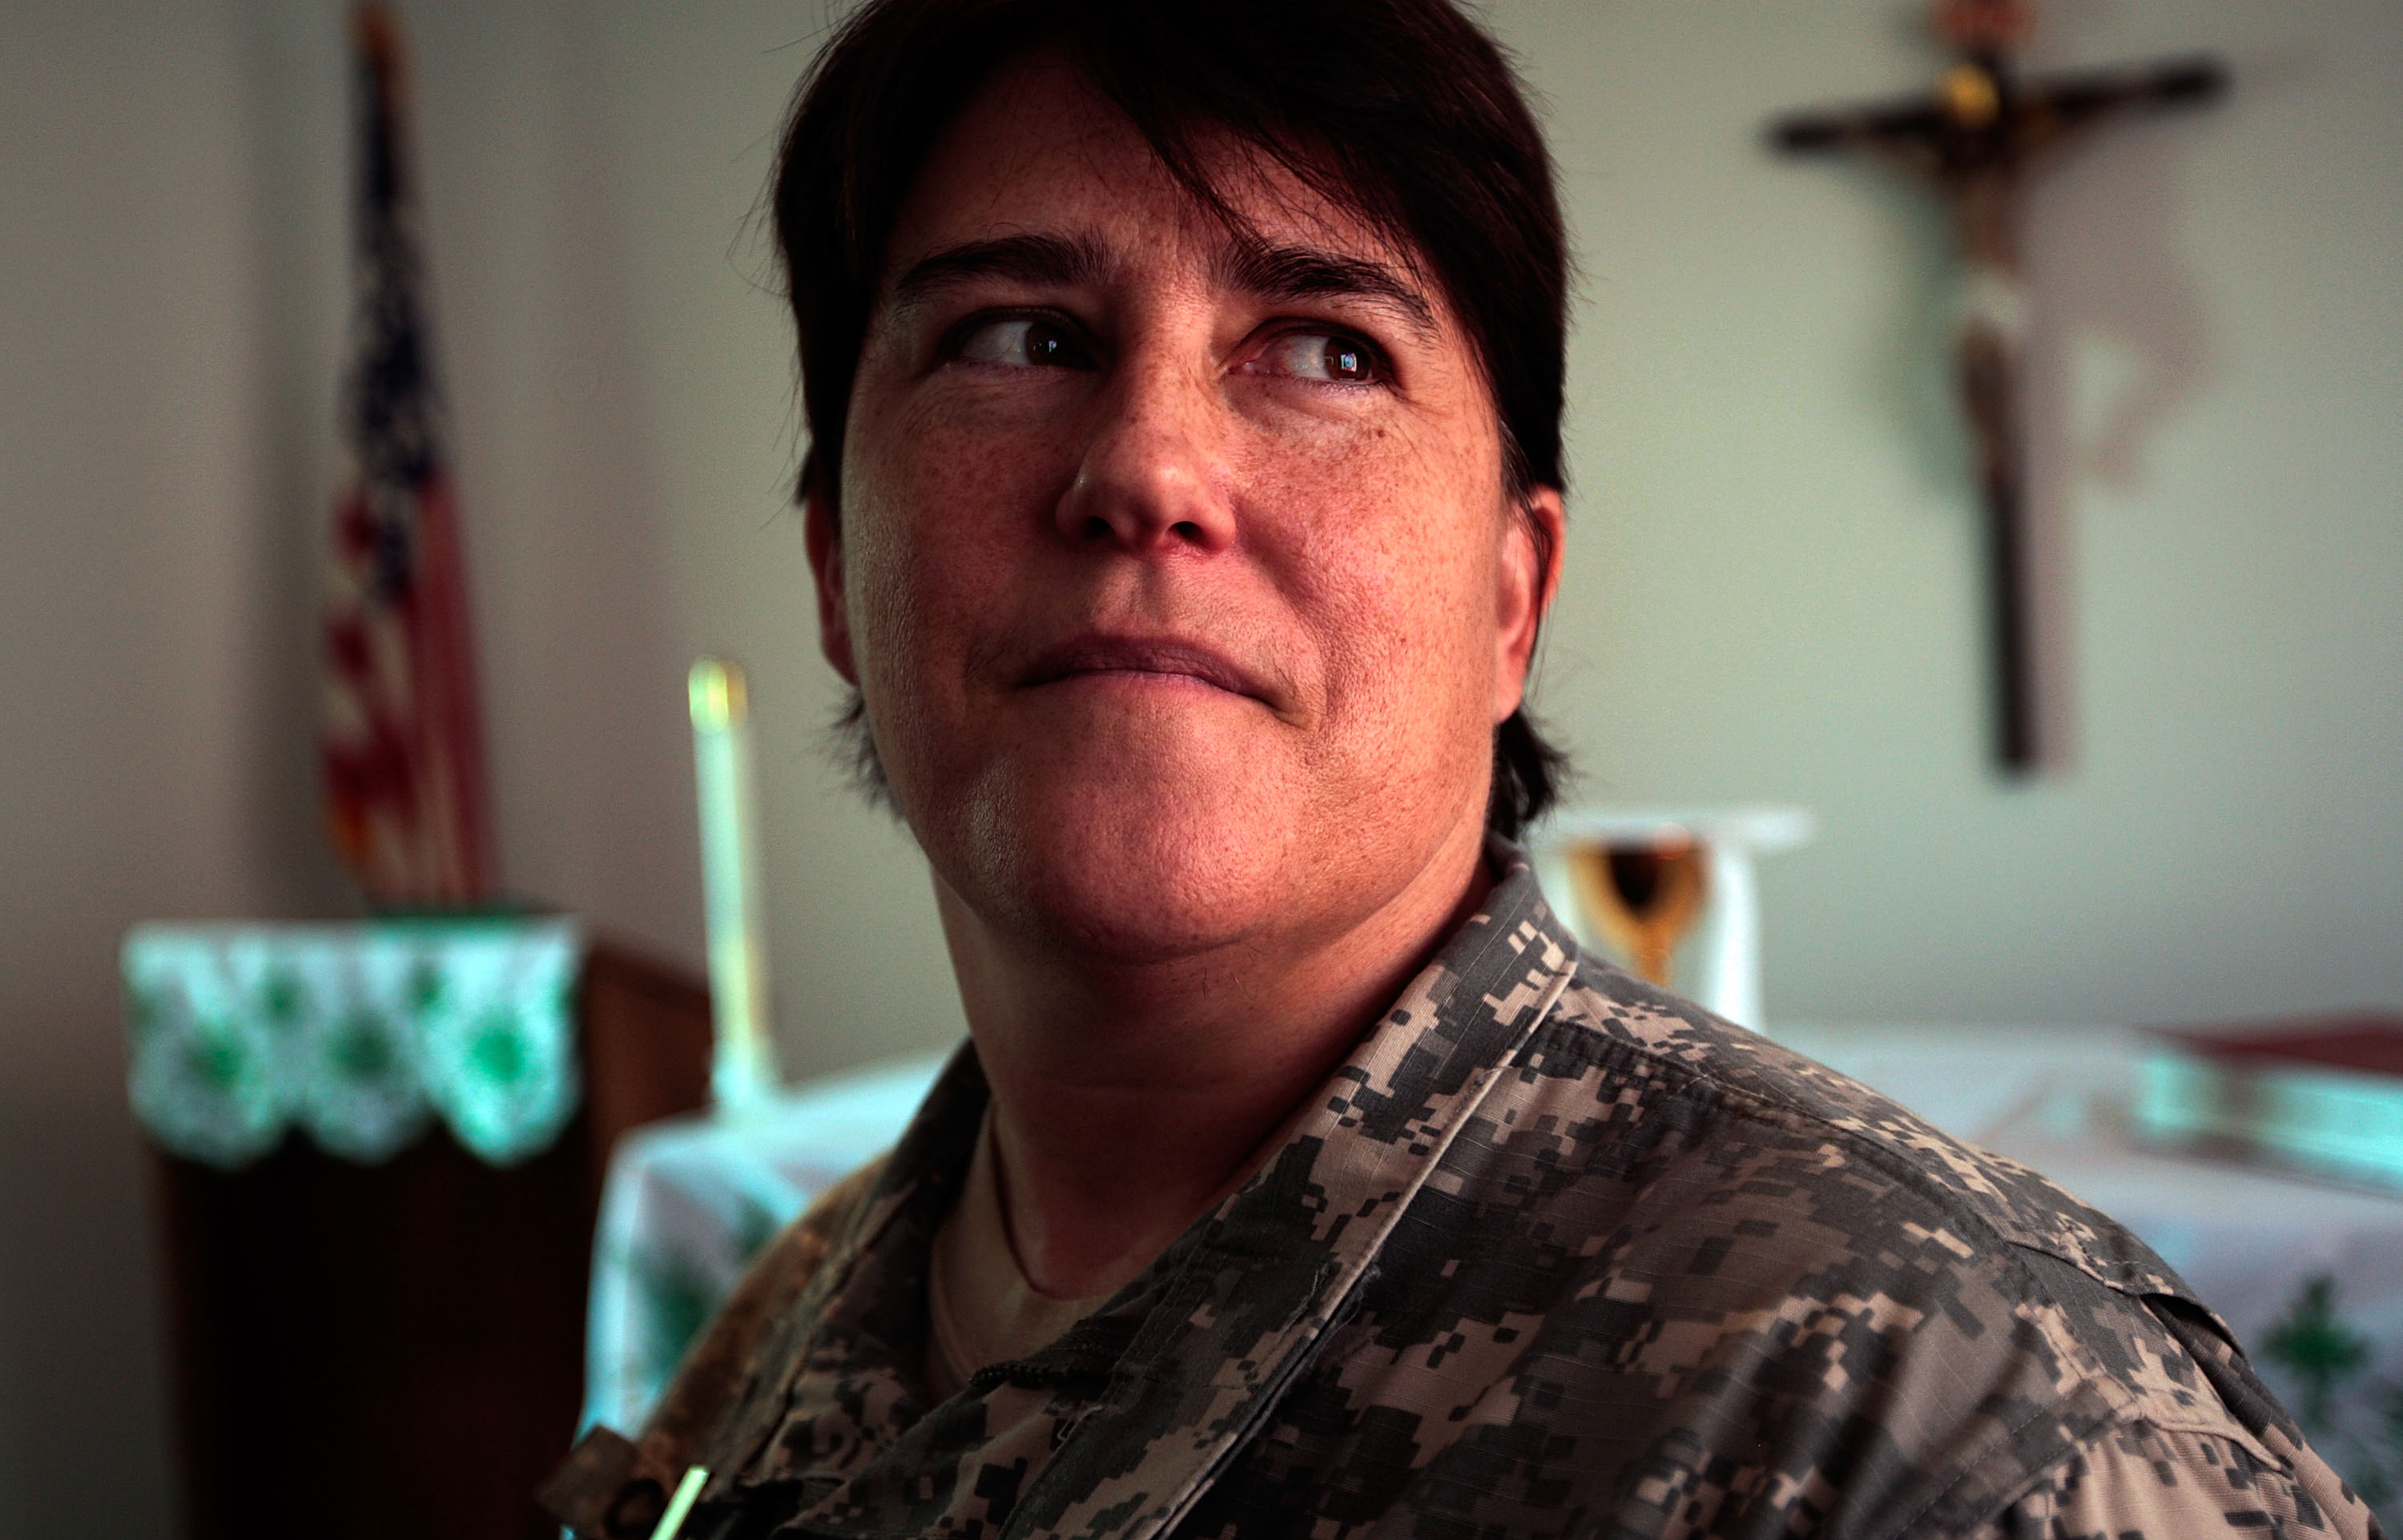 Women Veterans Suffer From Ptsd At Same Rate As Men